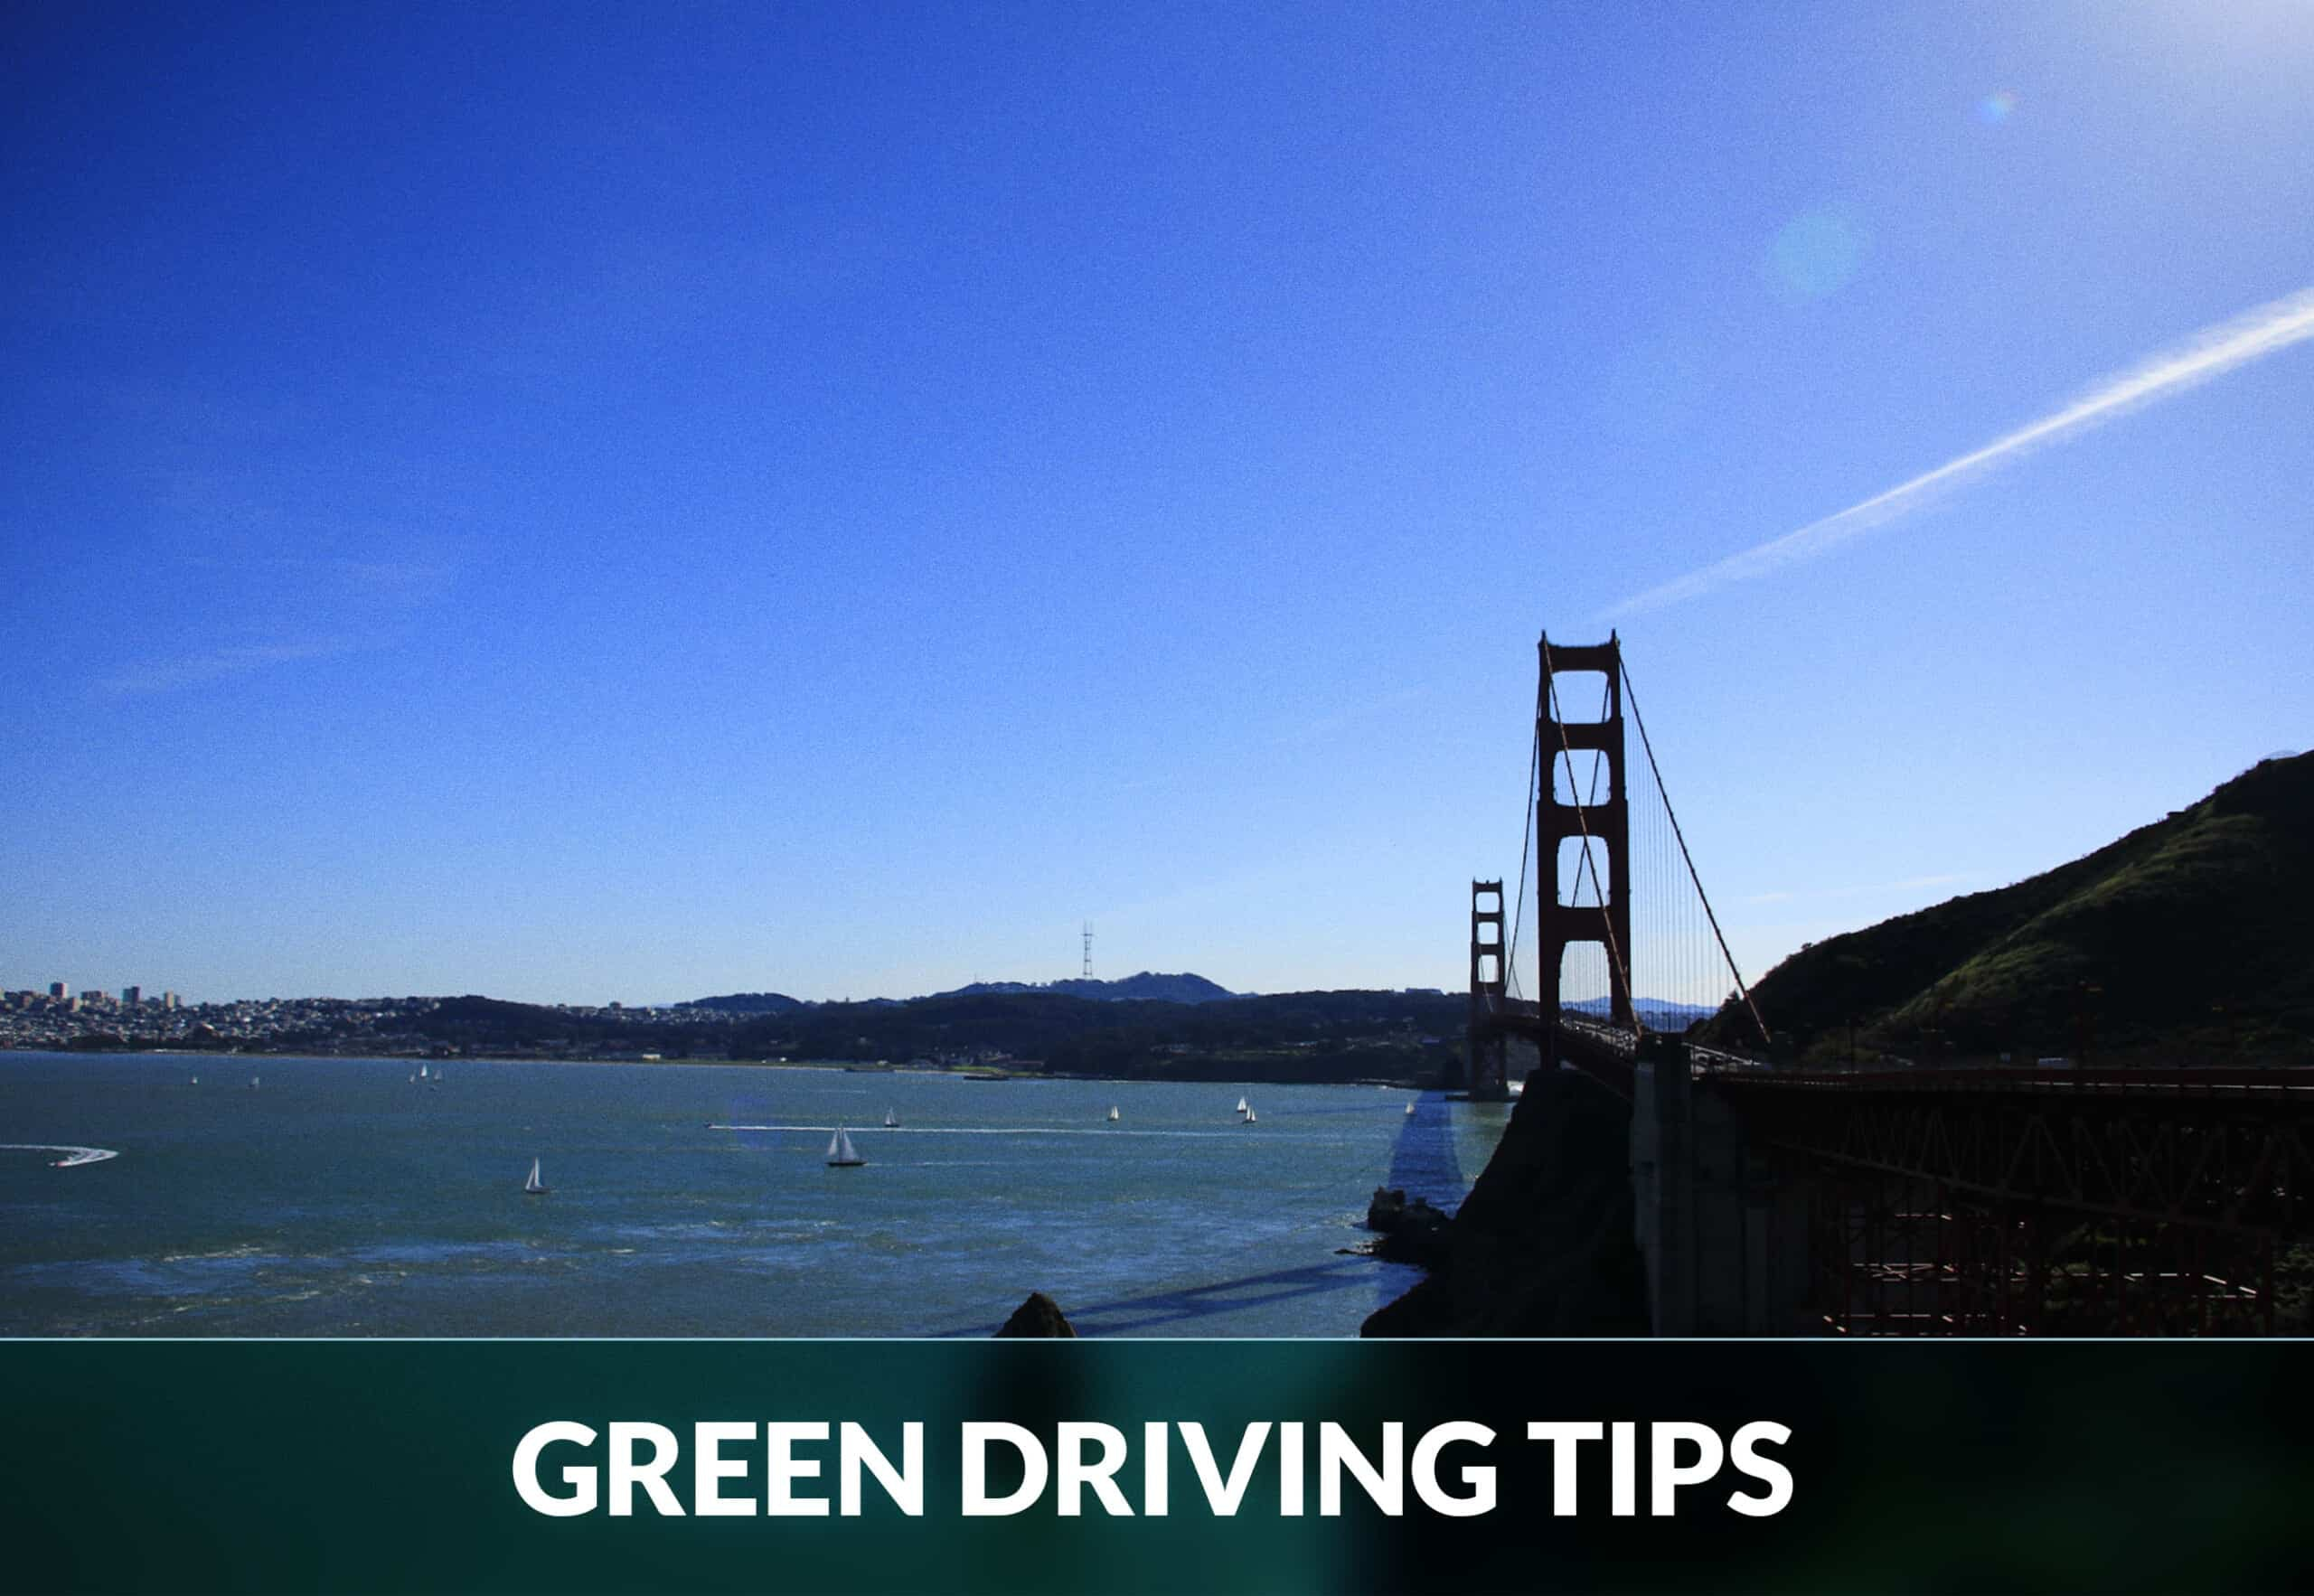 GREEN DRIVING TIPS